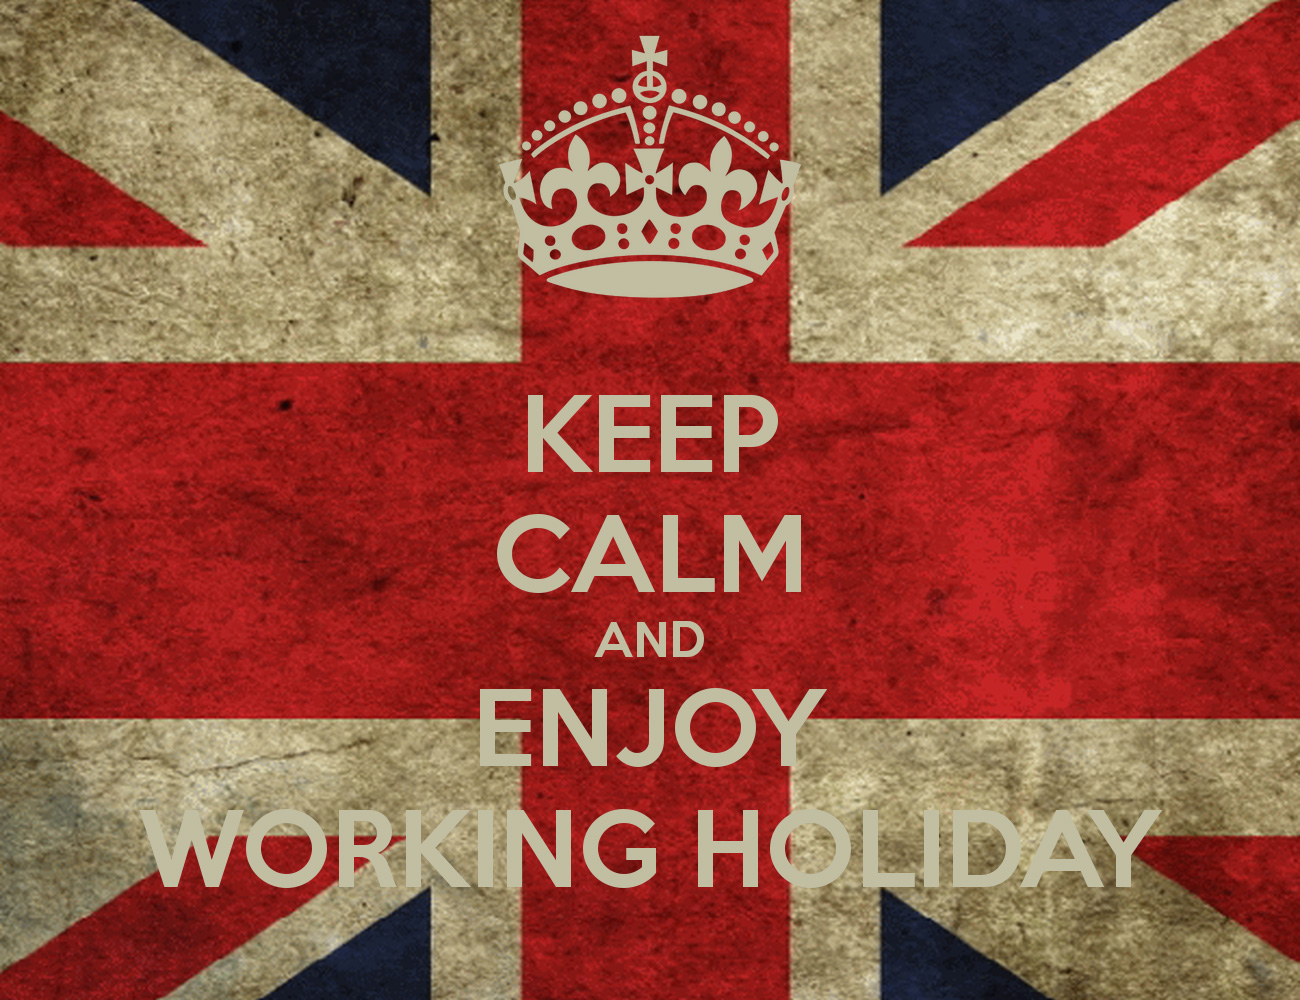 keep-calm-and-enjoy-working-holiday.jpg